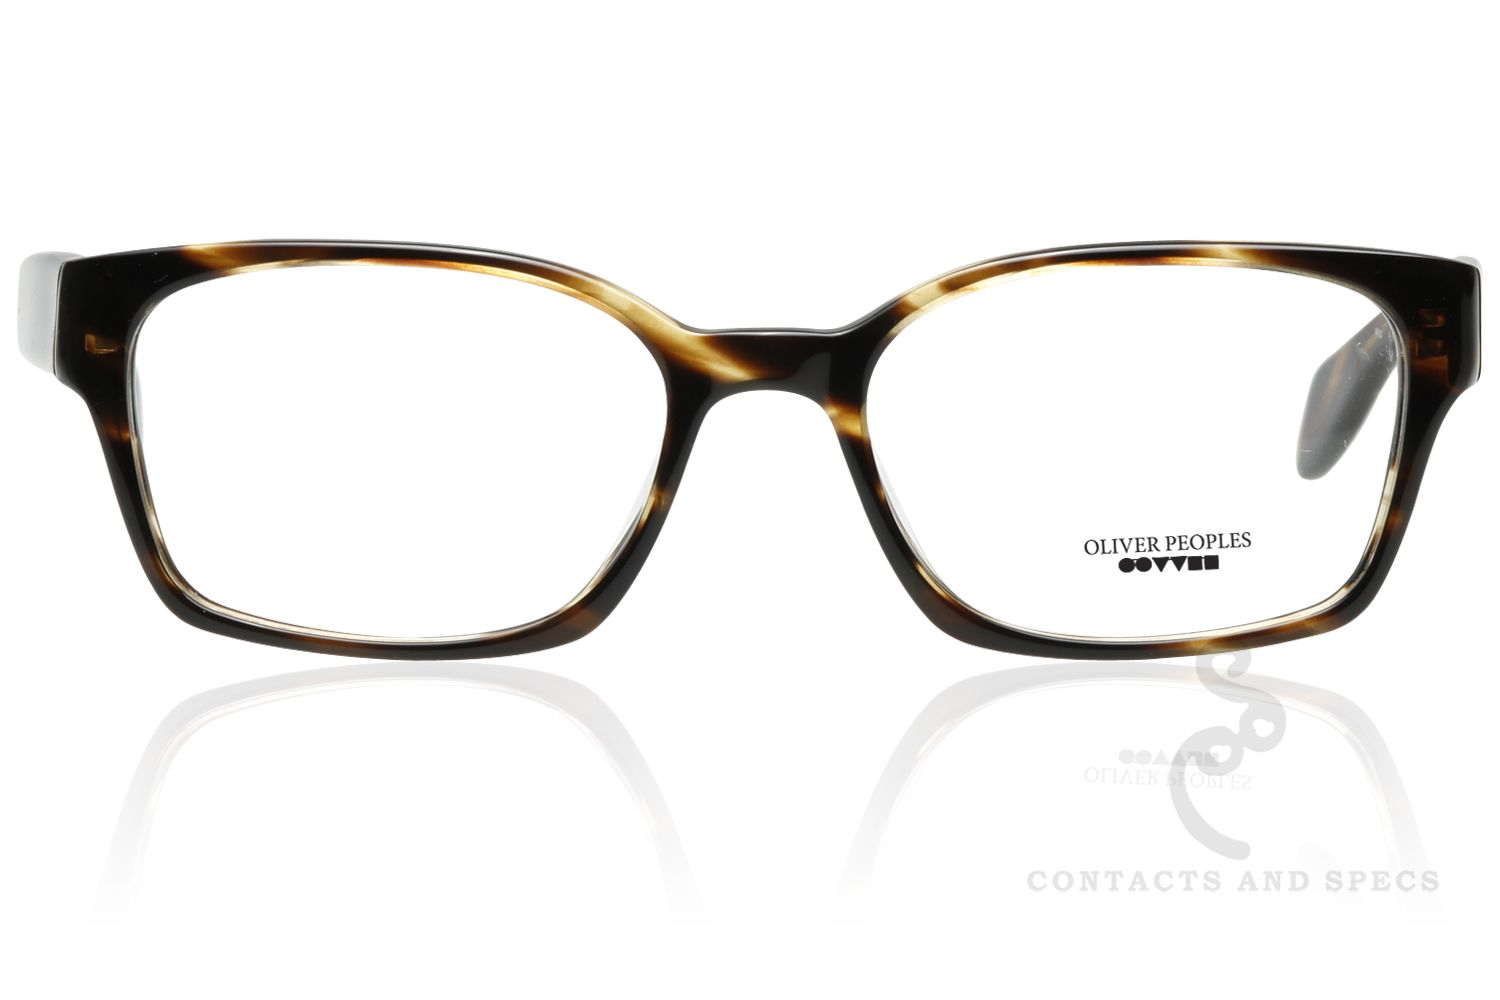 87733476d5a Oliver Peoples Eyewear Tinney - oversize frame with thick temple. YES  PLEASE!